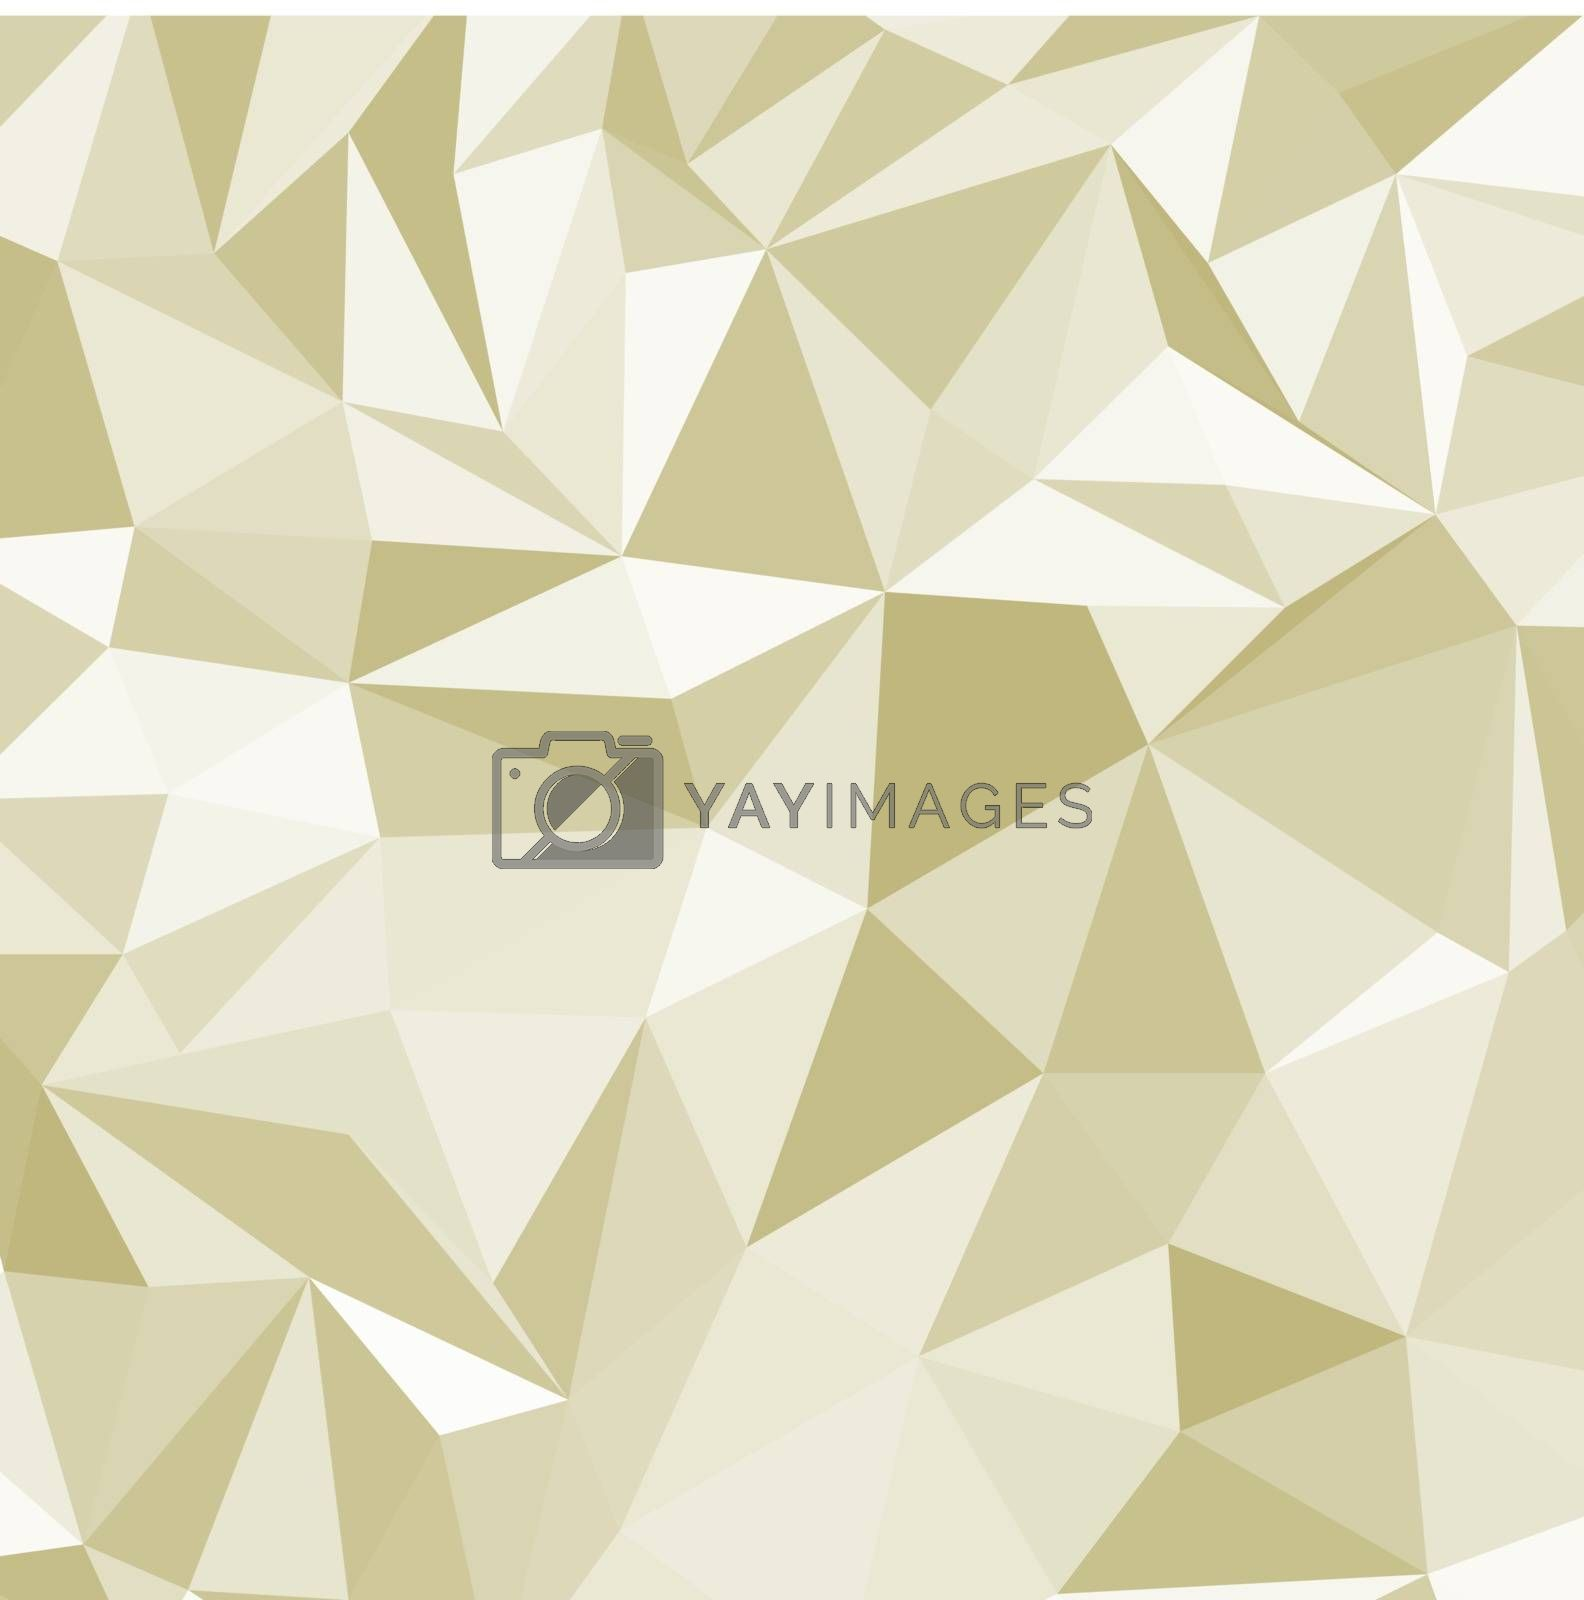 Royalty free image of Abstract 3d wire vector background. EPS 8 by Petrov_Vladimir